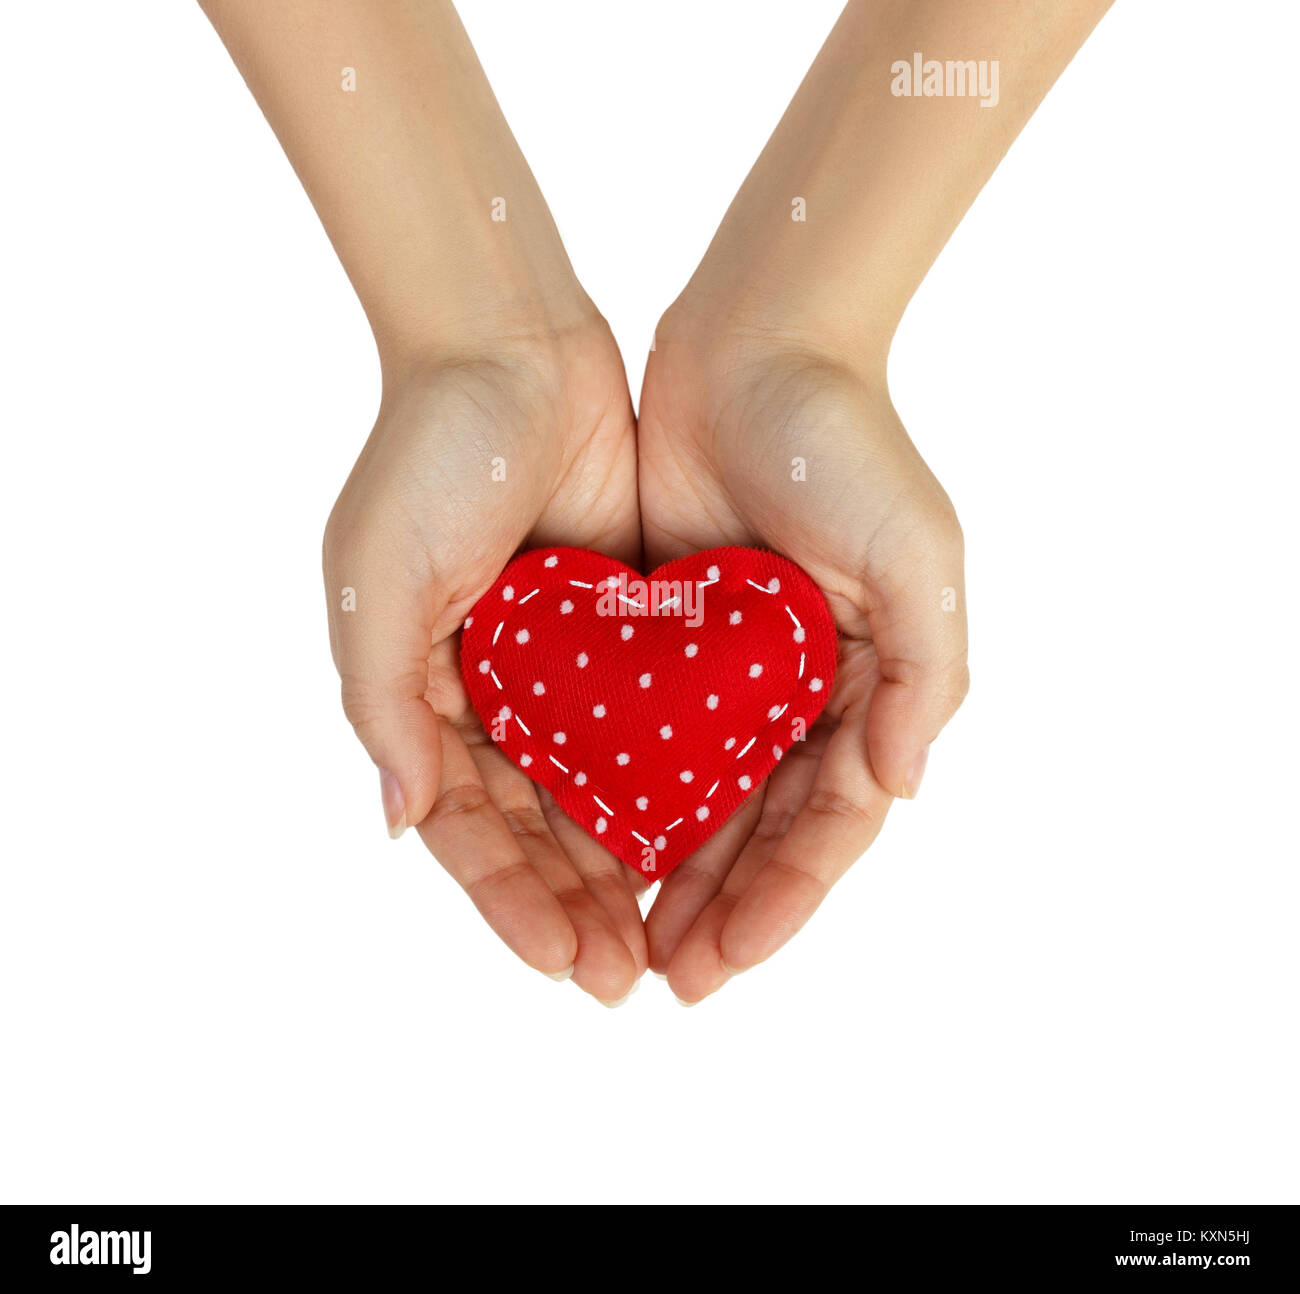 Image of hands holding heart isolated on white background. - Stock Image